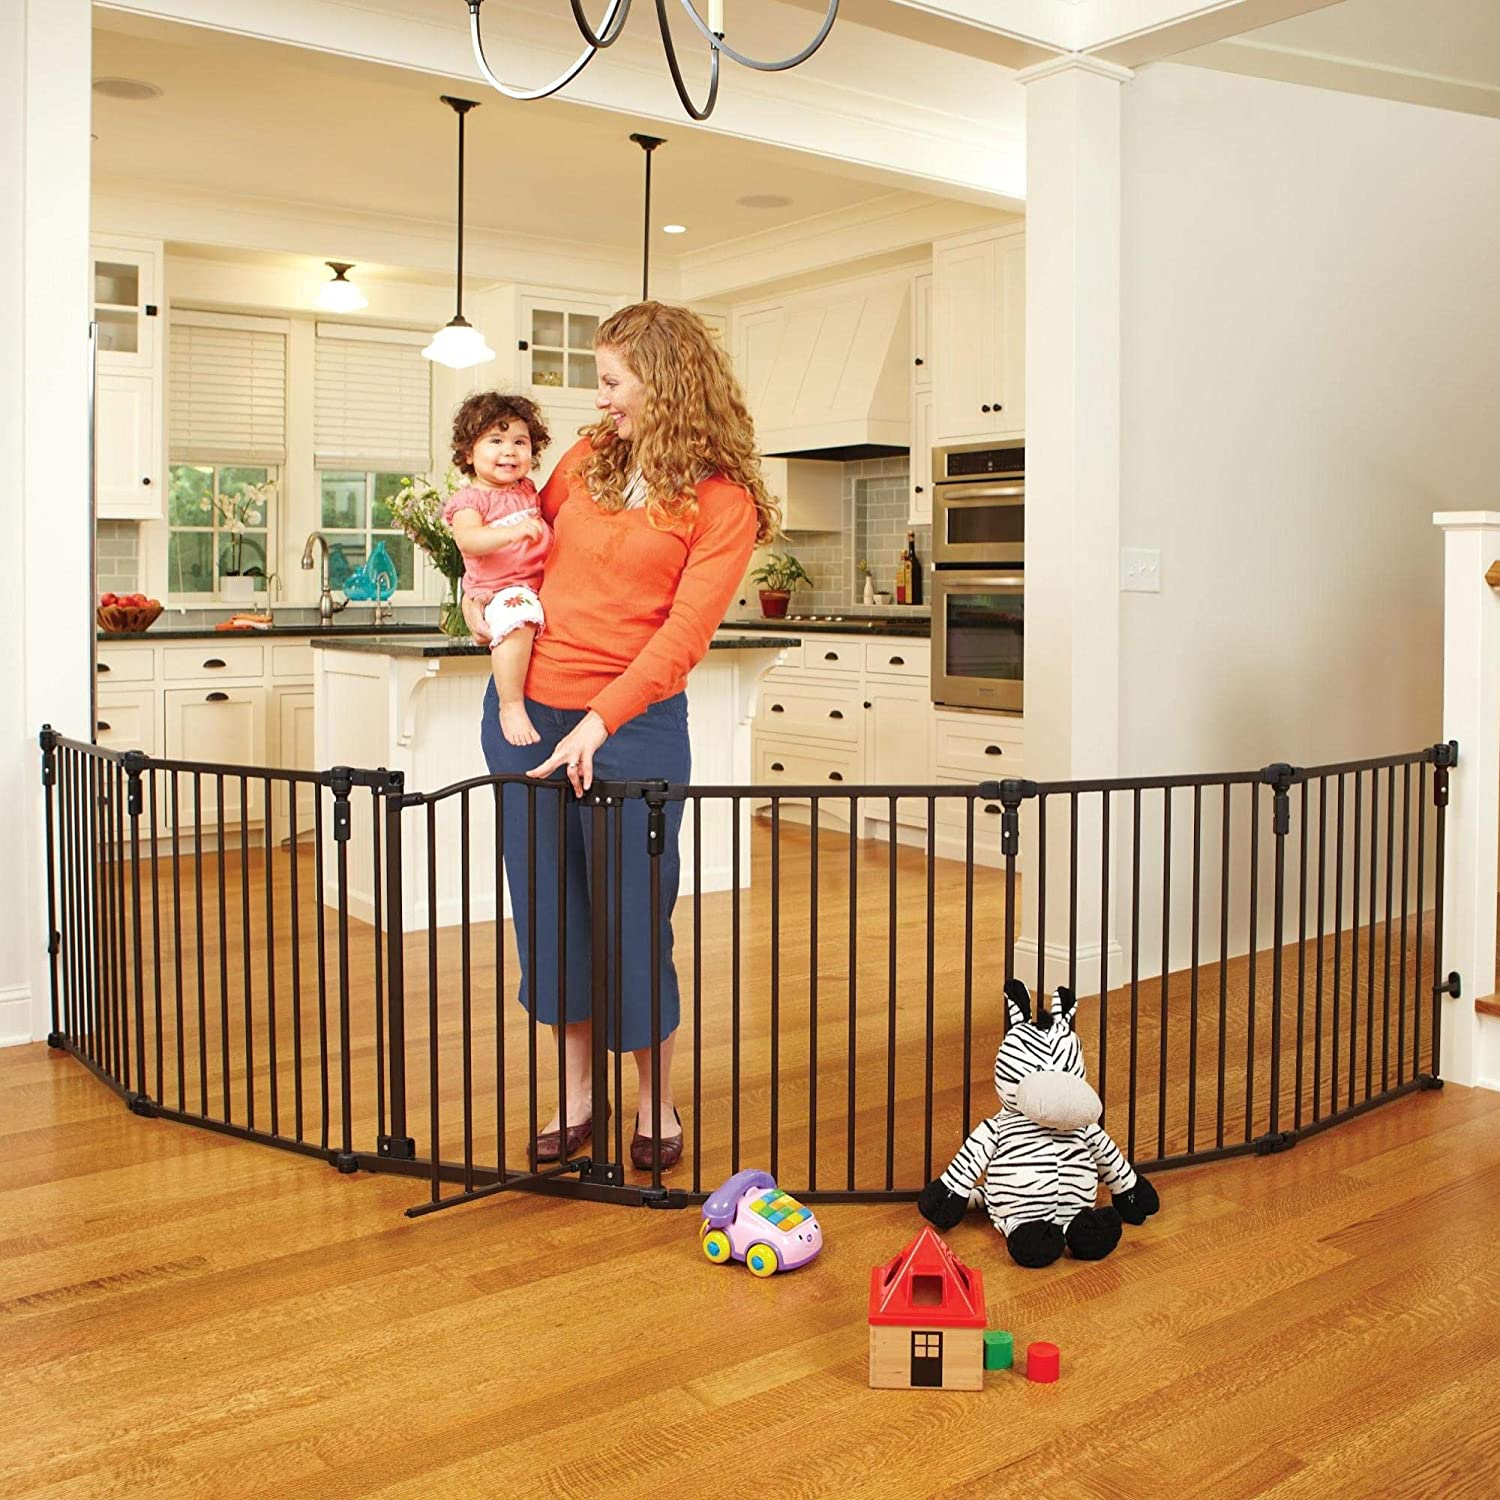 North States 3-in-1 Arched D cor Metal Superyard – 144 Long Play Yard Create an extra-wide gate or a play yard. Hardware mount or freestanding. 6 panels, 10 sq.ft. enclosure 30 tall, Matte bronze